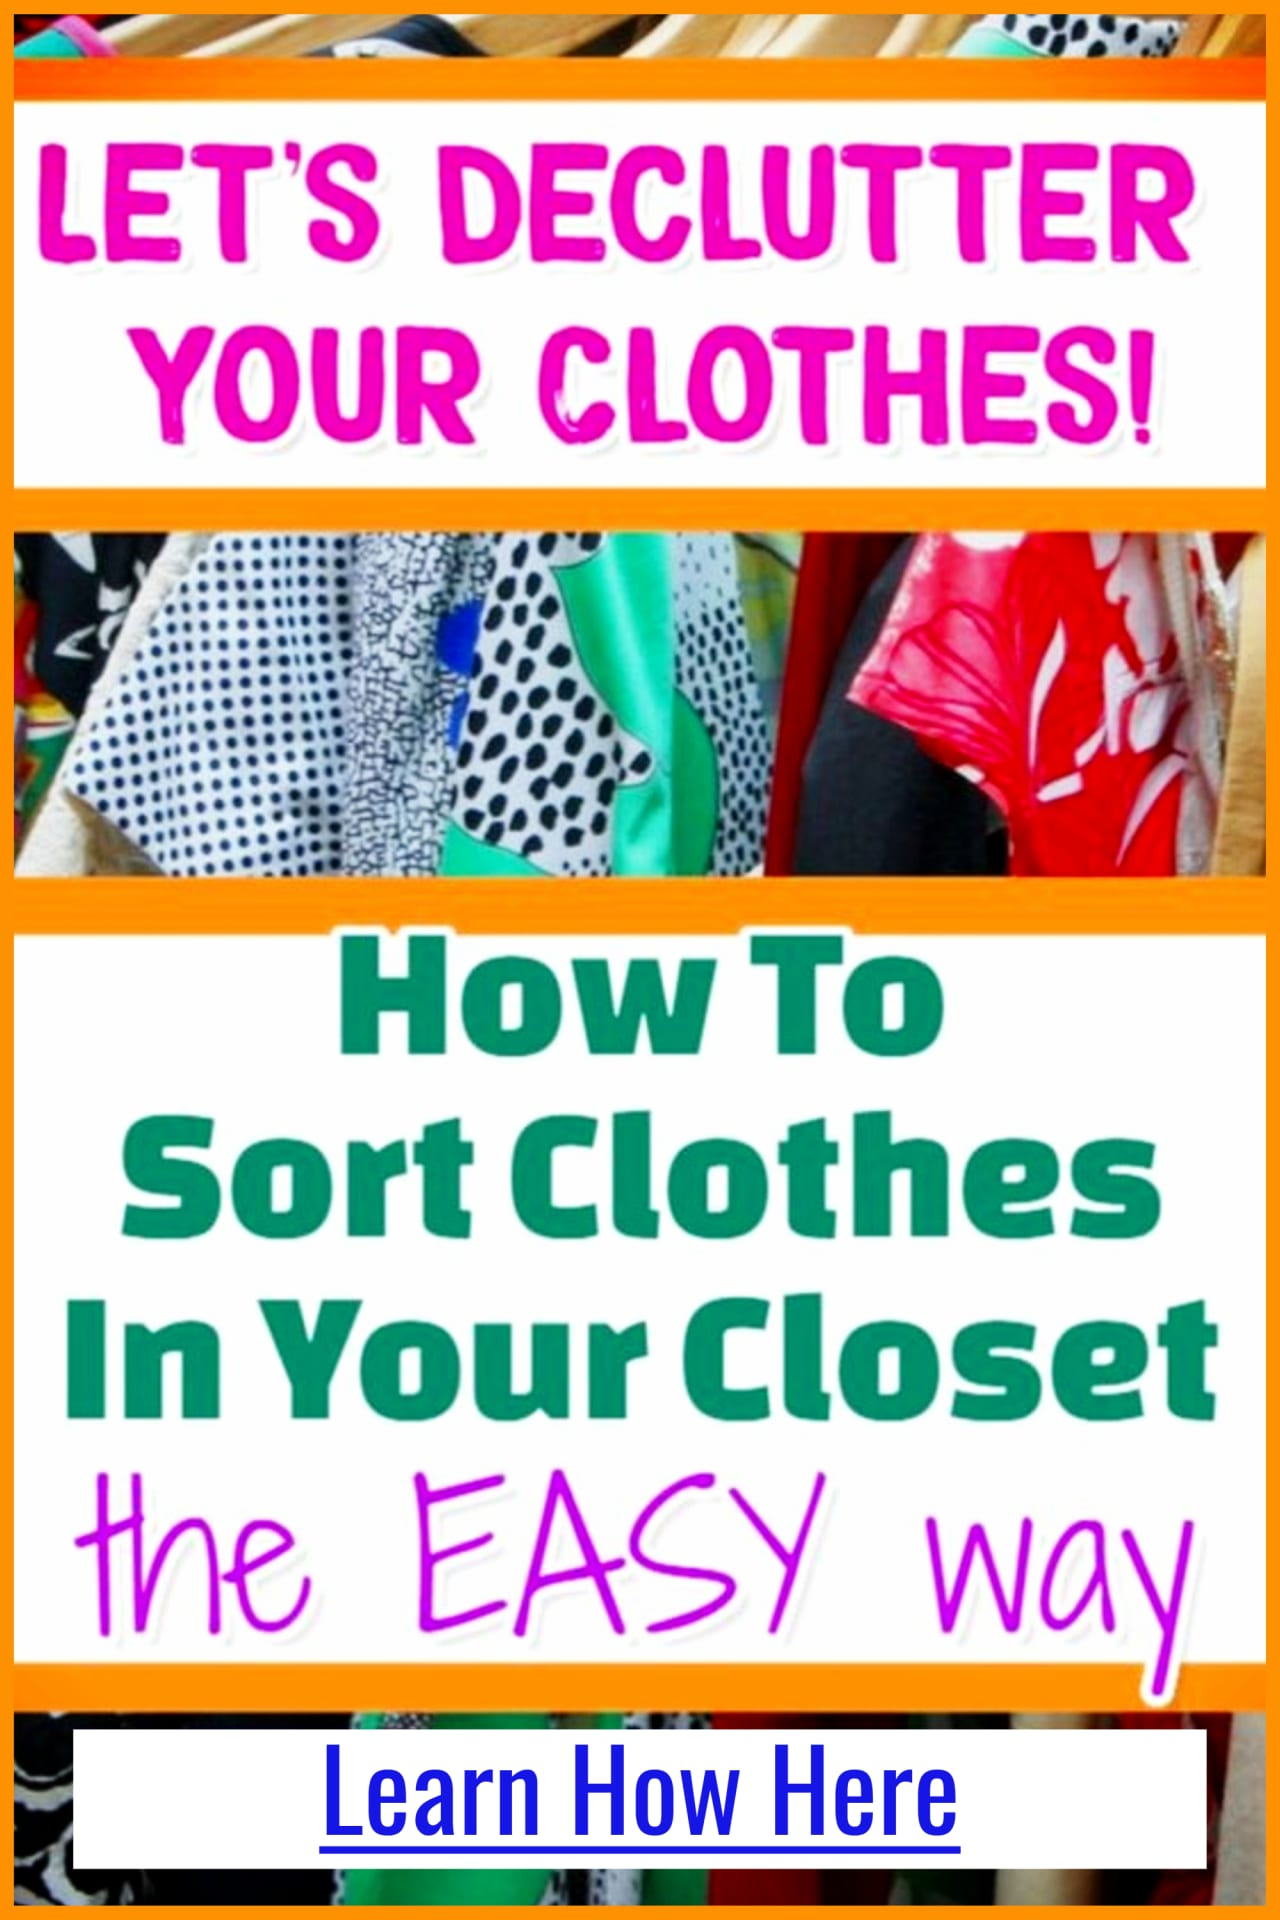 Clothes organization and closet organization ideas - Easy Decluttering Tips and Organizing Ideas For The Home - Decluttering Ideas if you're feeling overwhelmed - where to start decluttering and organizing your messy house - decluttering step by step to declutter and organize without feeling overwhelmed